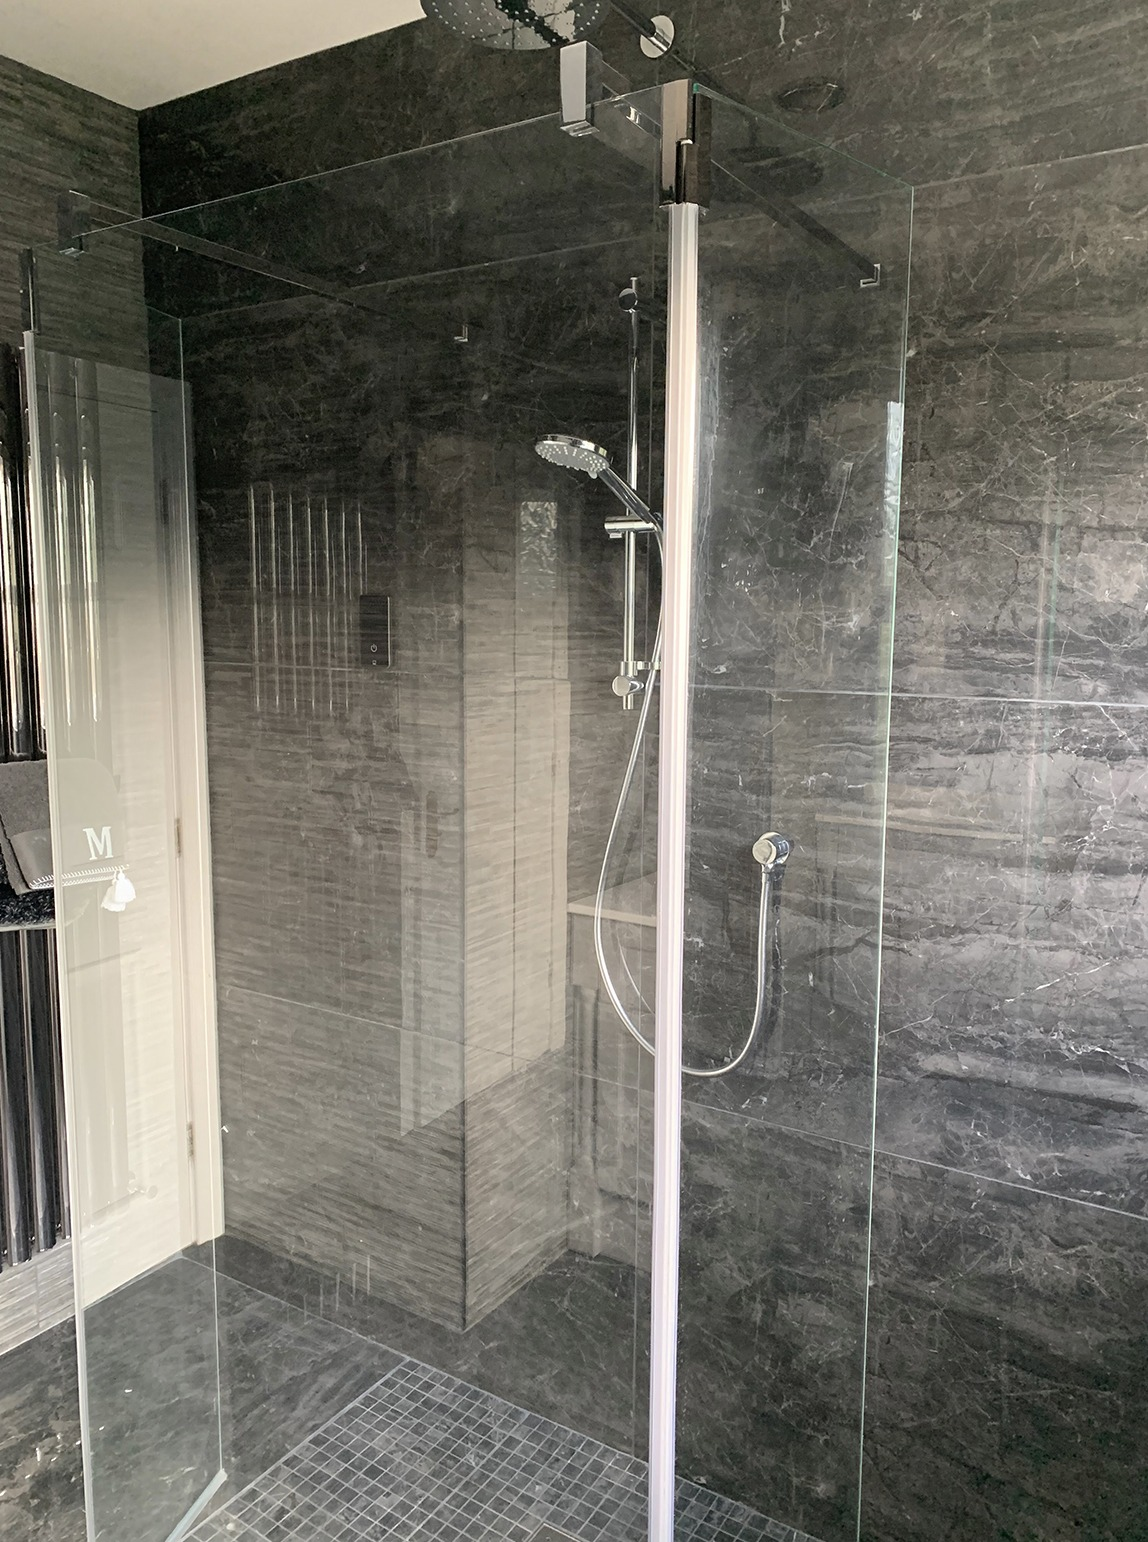 Bathroom refurbishment - Shower